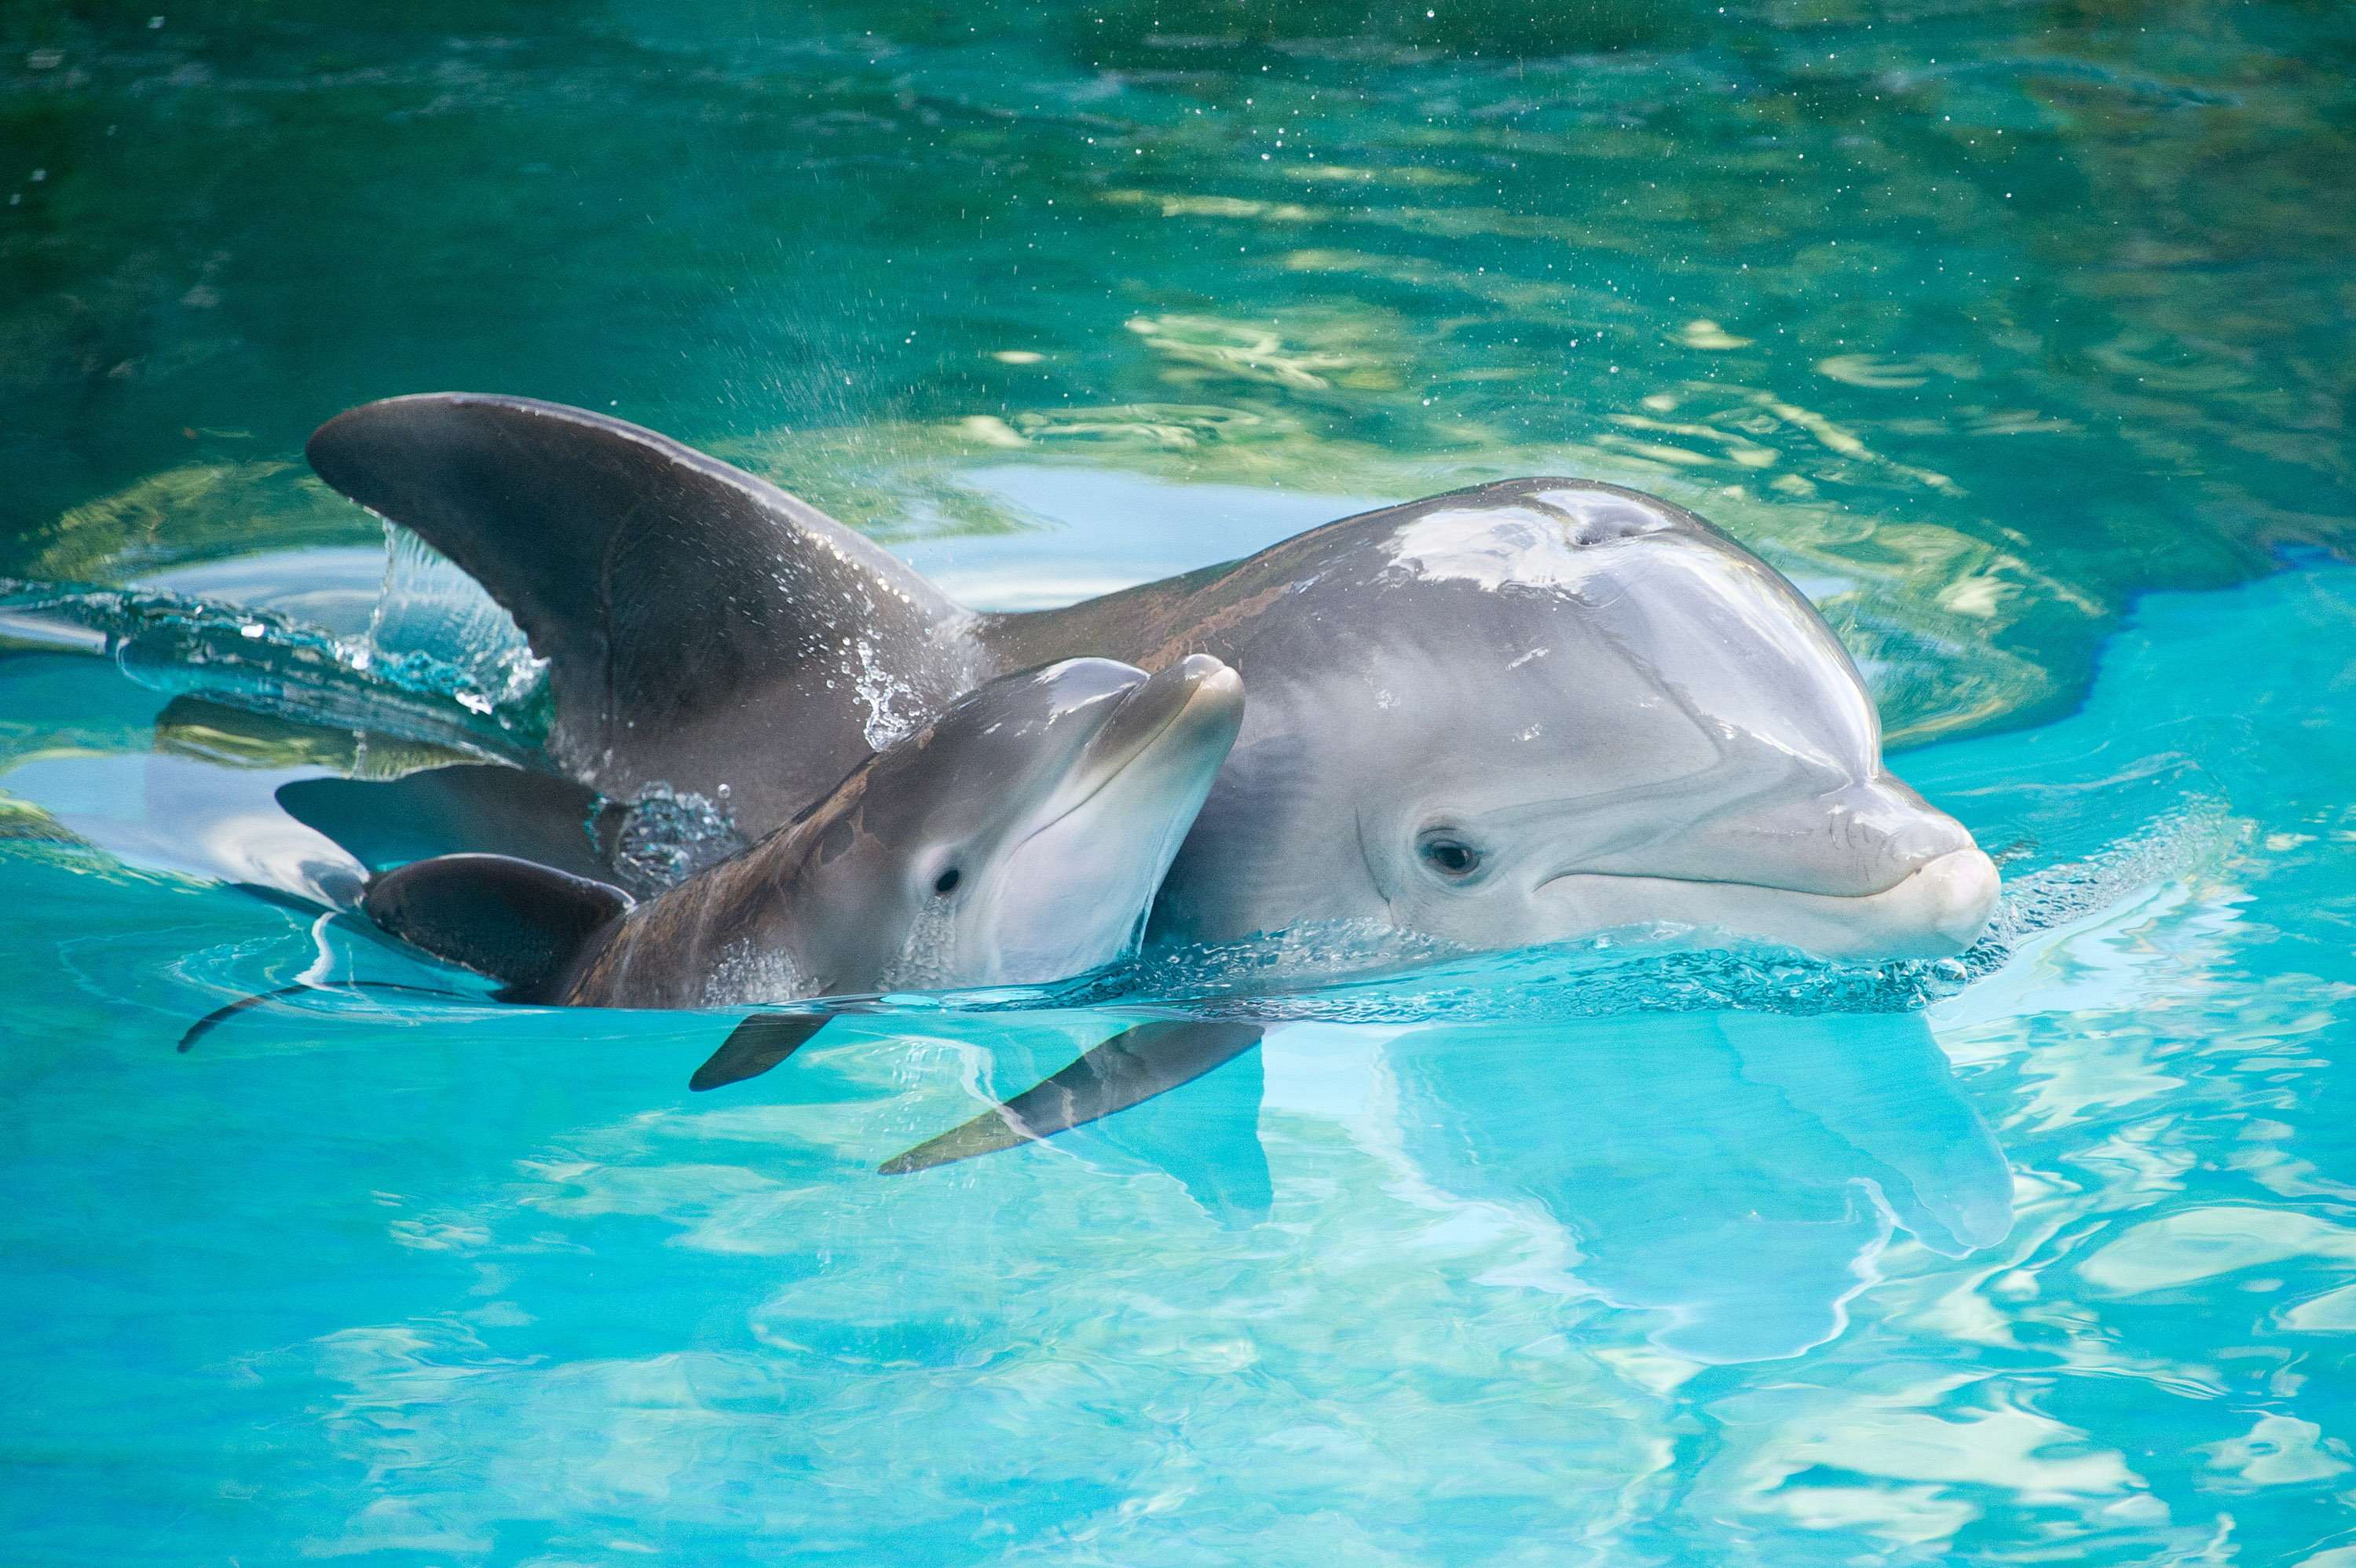 206 dolphin hd wallpapers background images wallpaper abyss hd wallpaper background image id821314 3000x1997 animal dolphin voltagebd Gallery